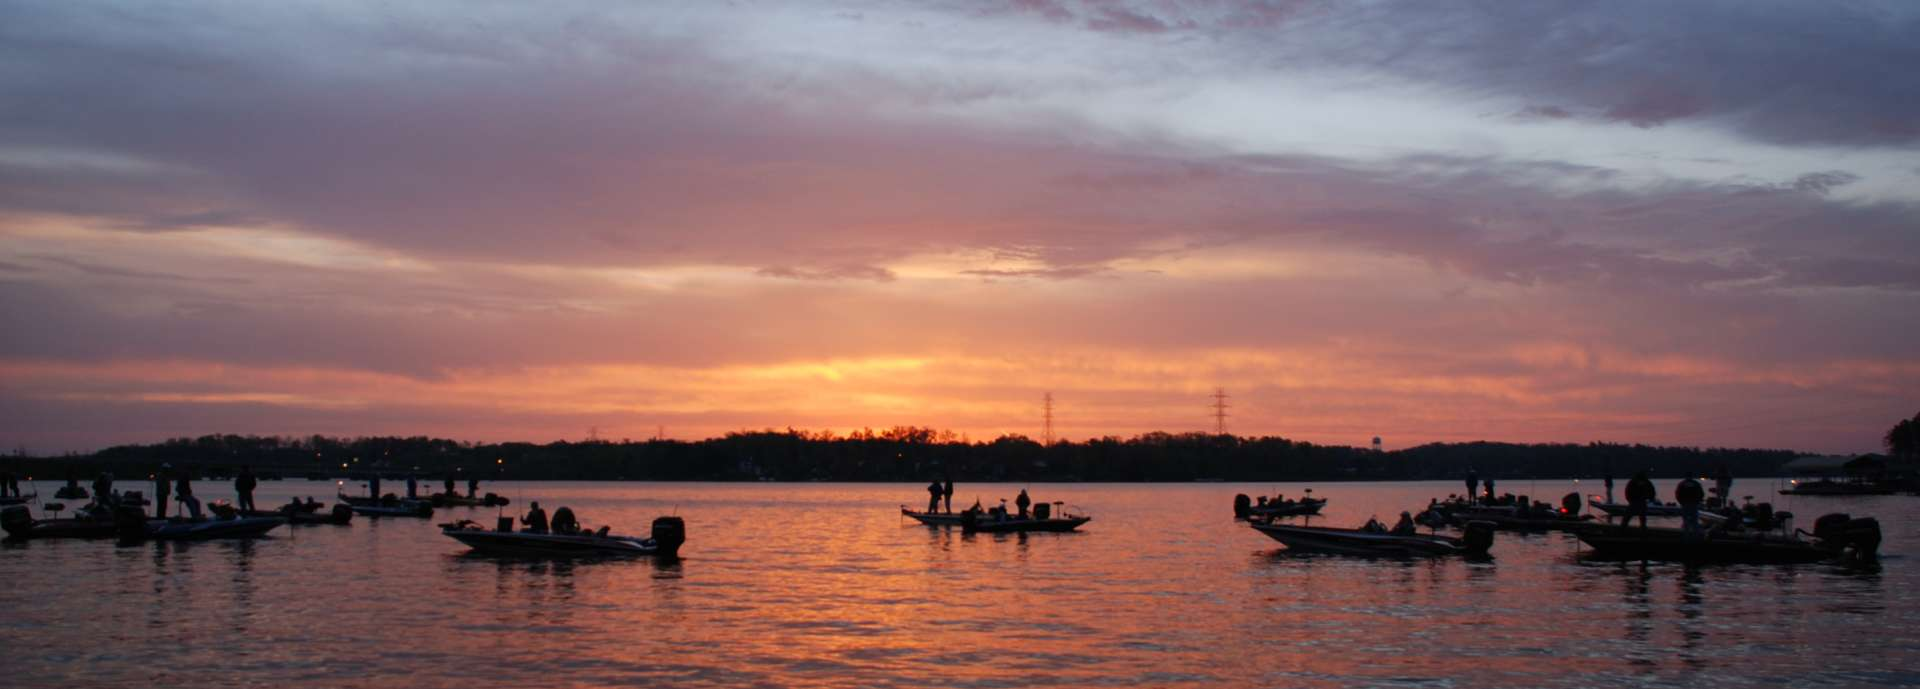 Lake Norman Fishing Guides | Charters, Rentals & Information